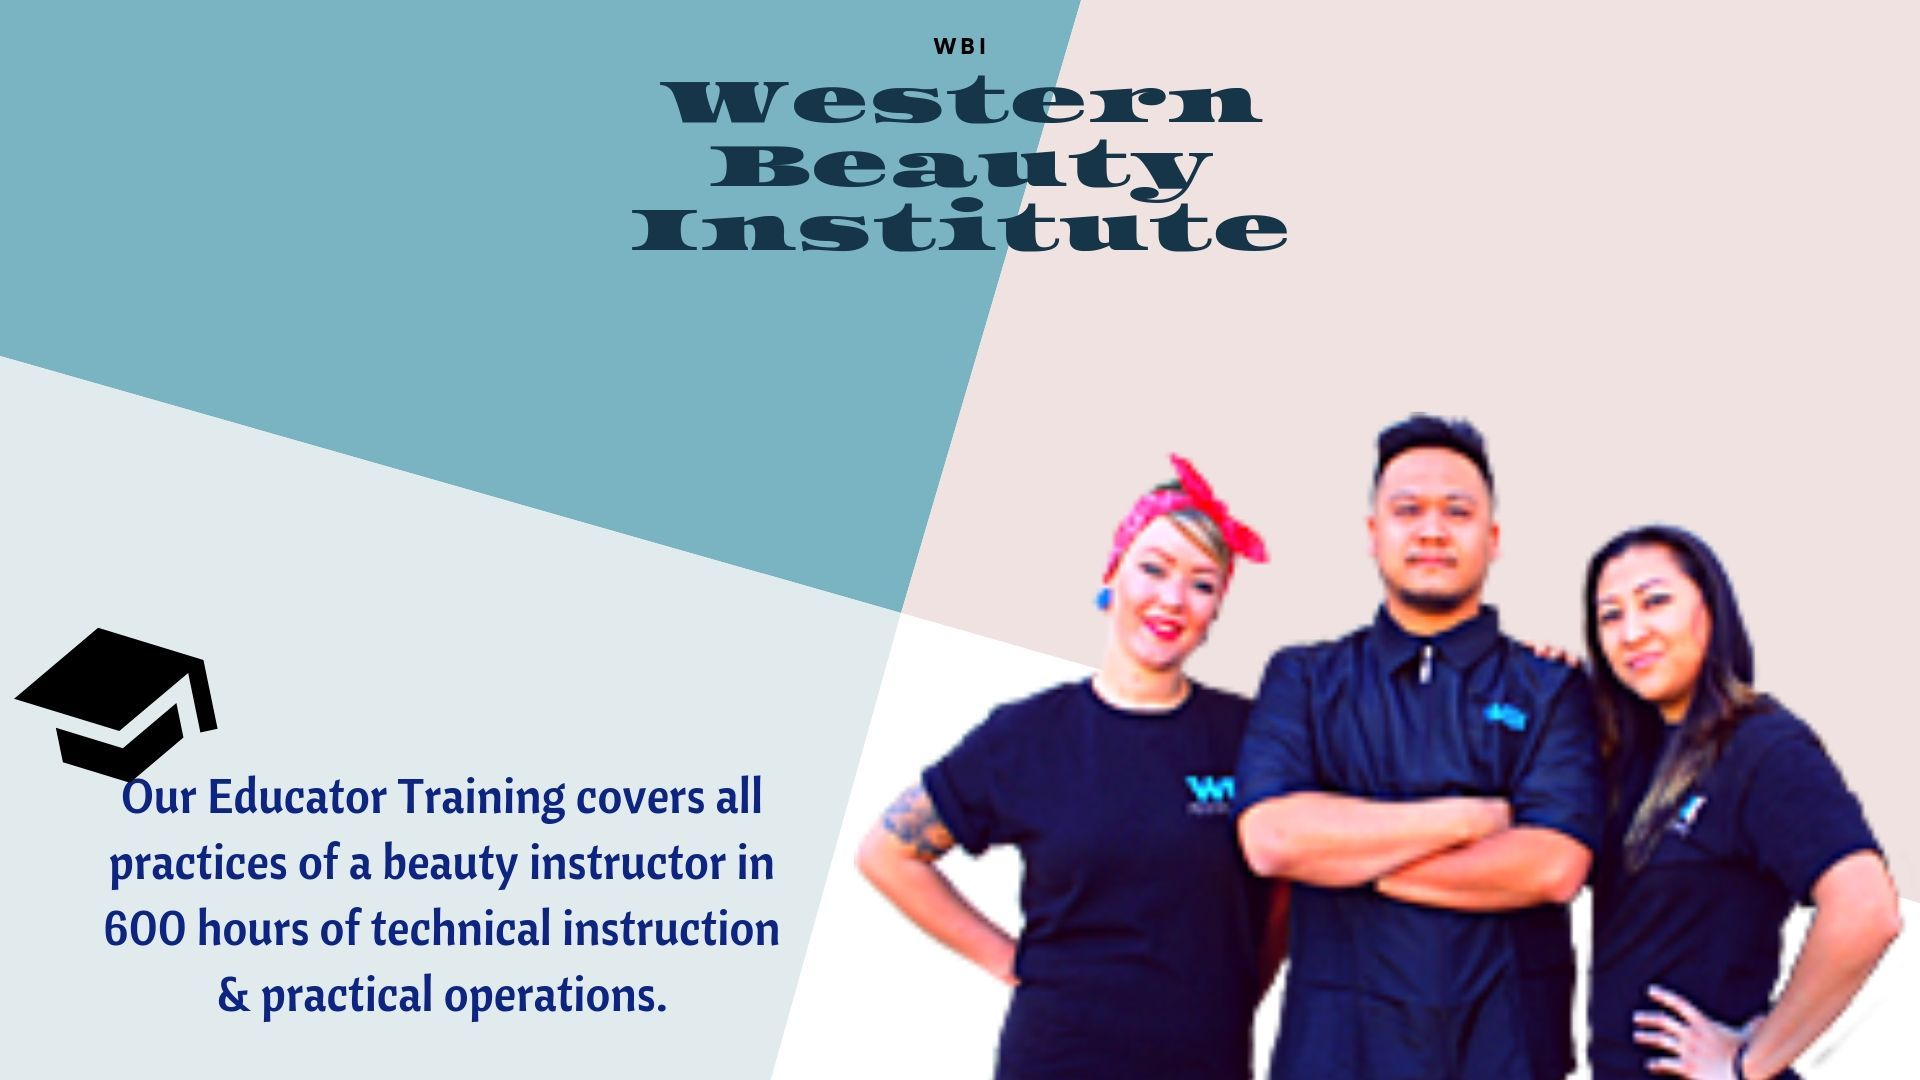 WBI California's premier cosmetology and barber school